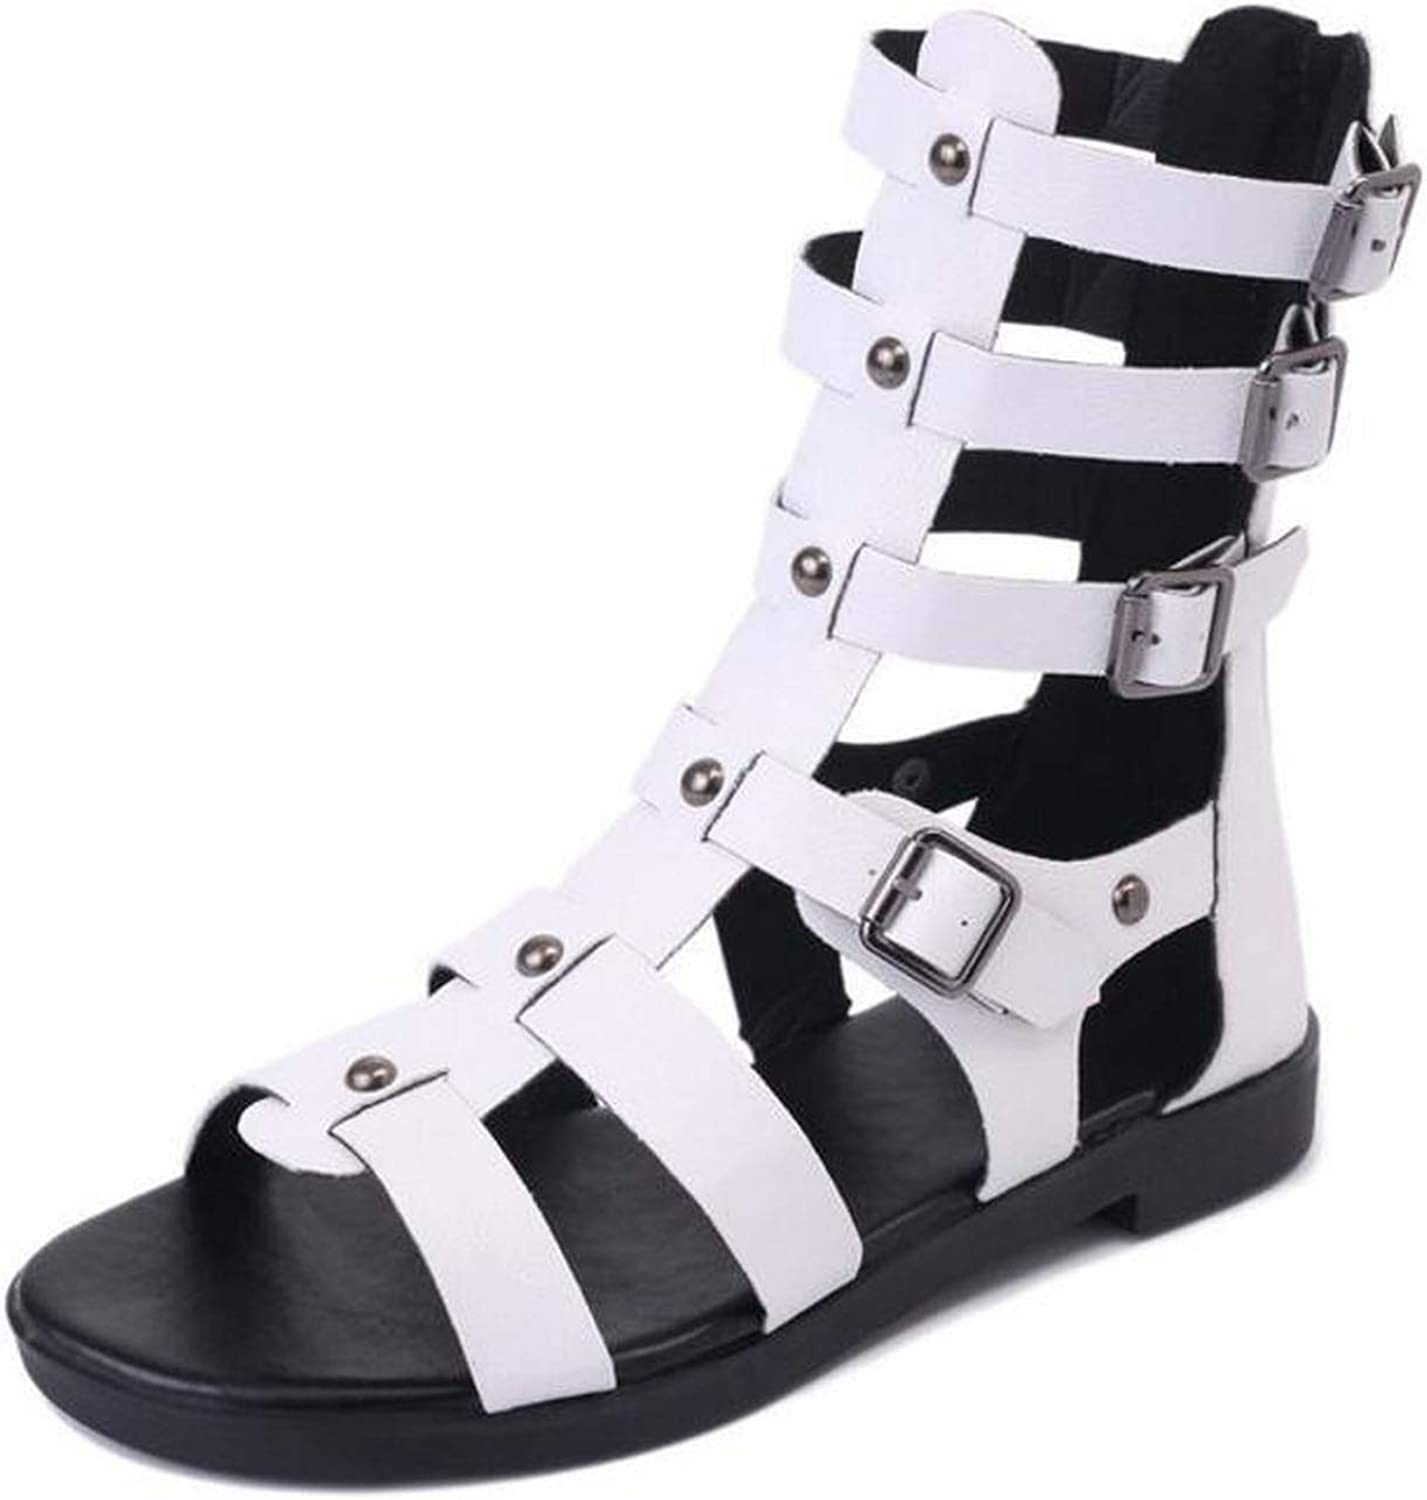 2018 Summer Roman Women mid-Calf Cool Boots Open Toe Casual shoes Fashion Buckle Flat Sandals